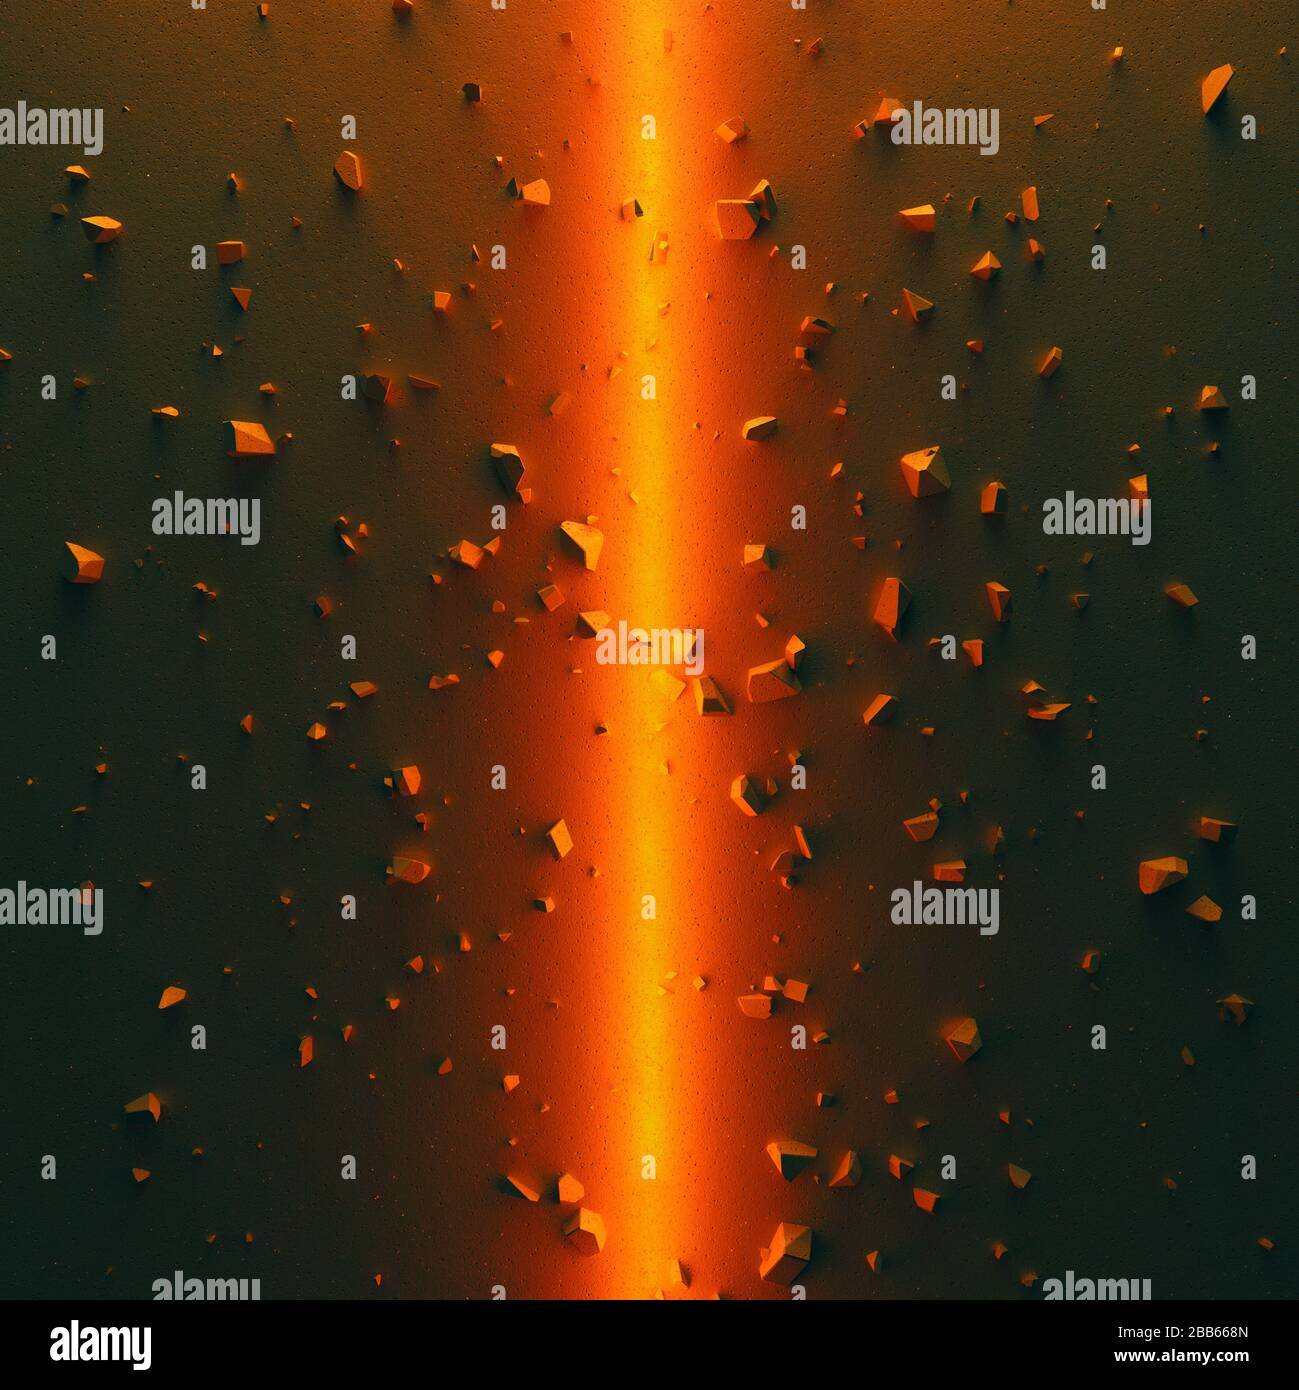 Epic cinematic background. Concrete ground divided into two parts by bright orange light. Debris scattered around. 3D illustration Stock Photo